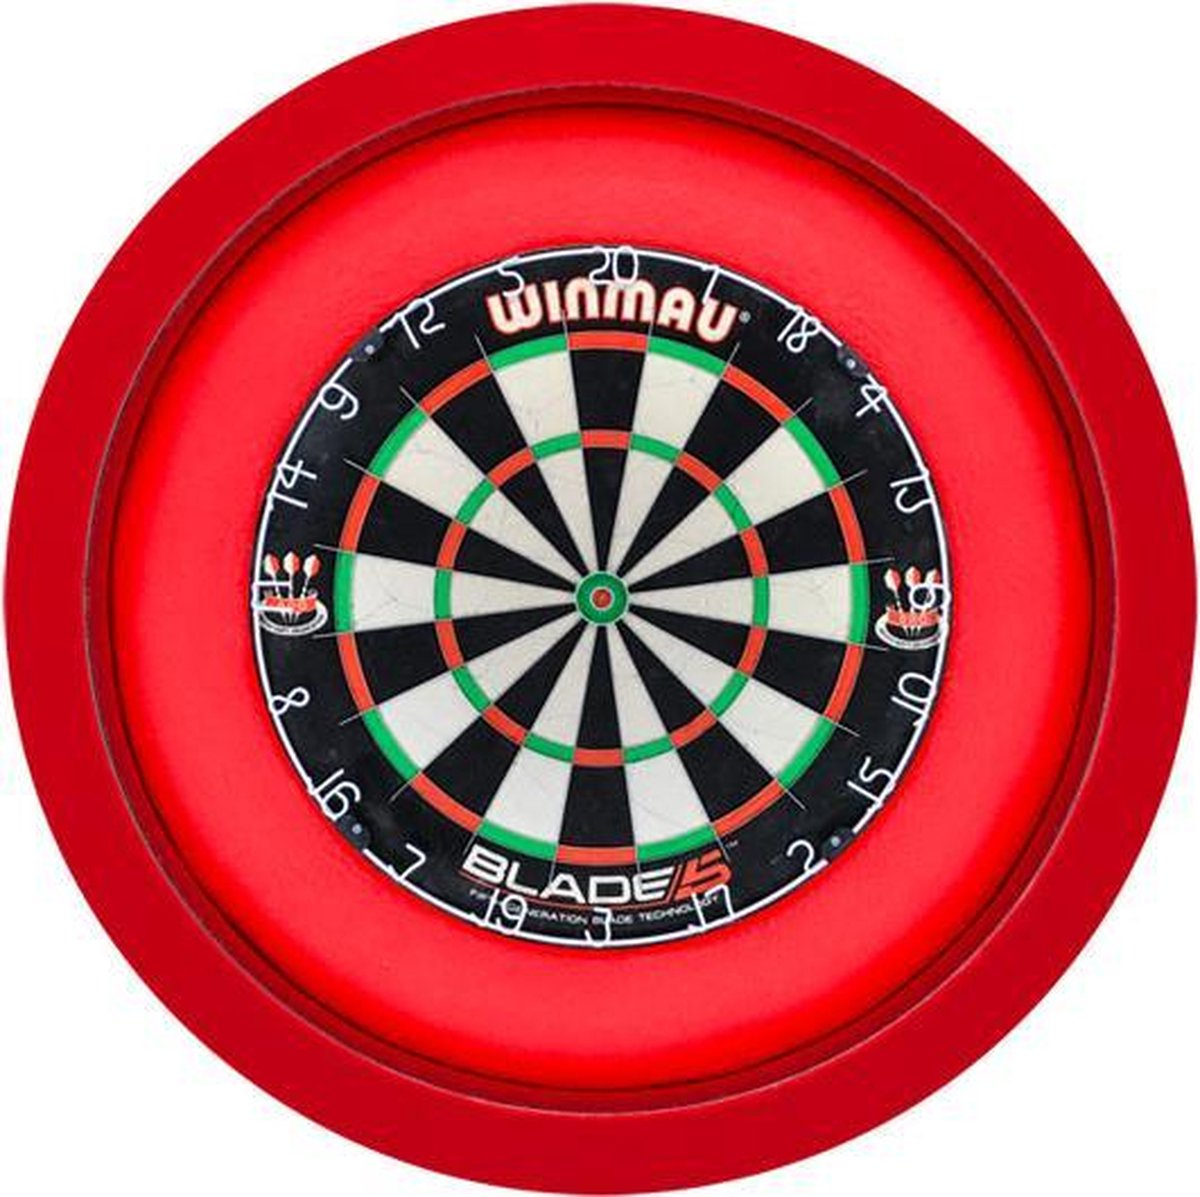 S4D Dartbord Verlichting XXL One Color Rood